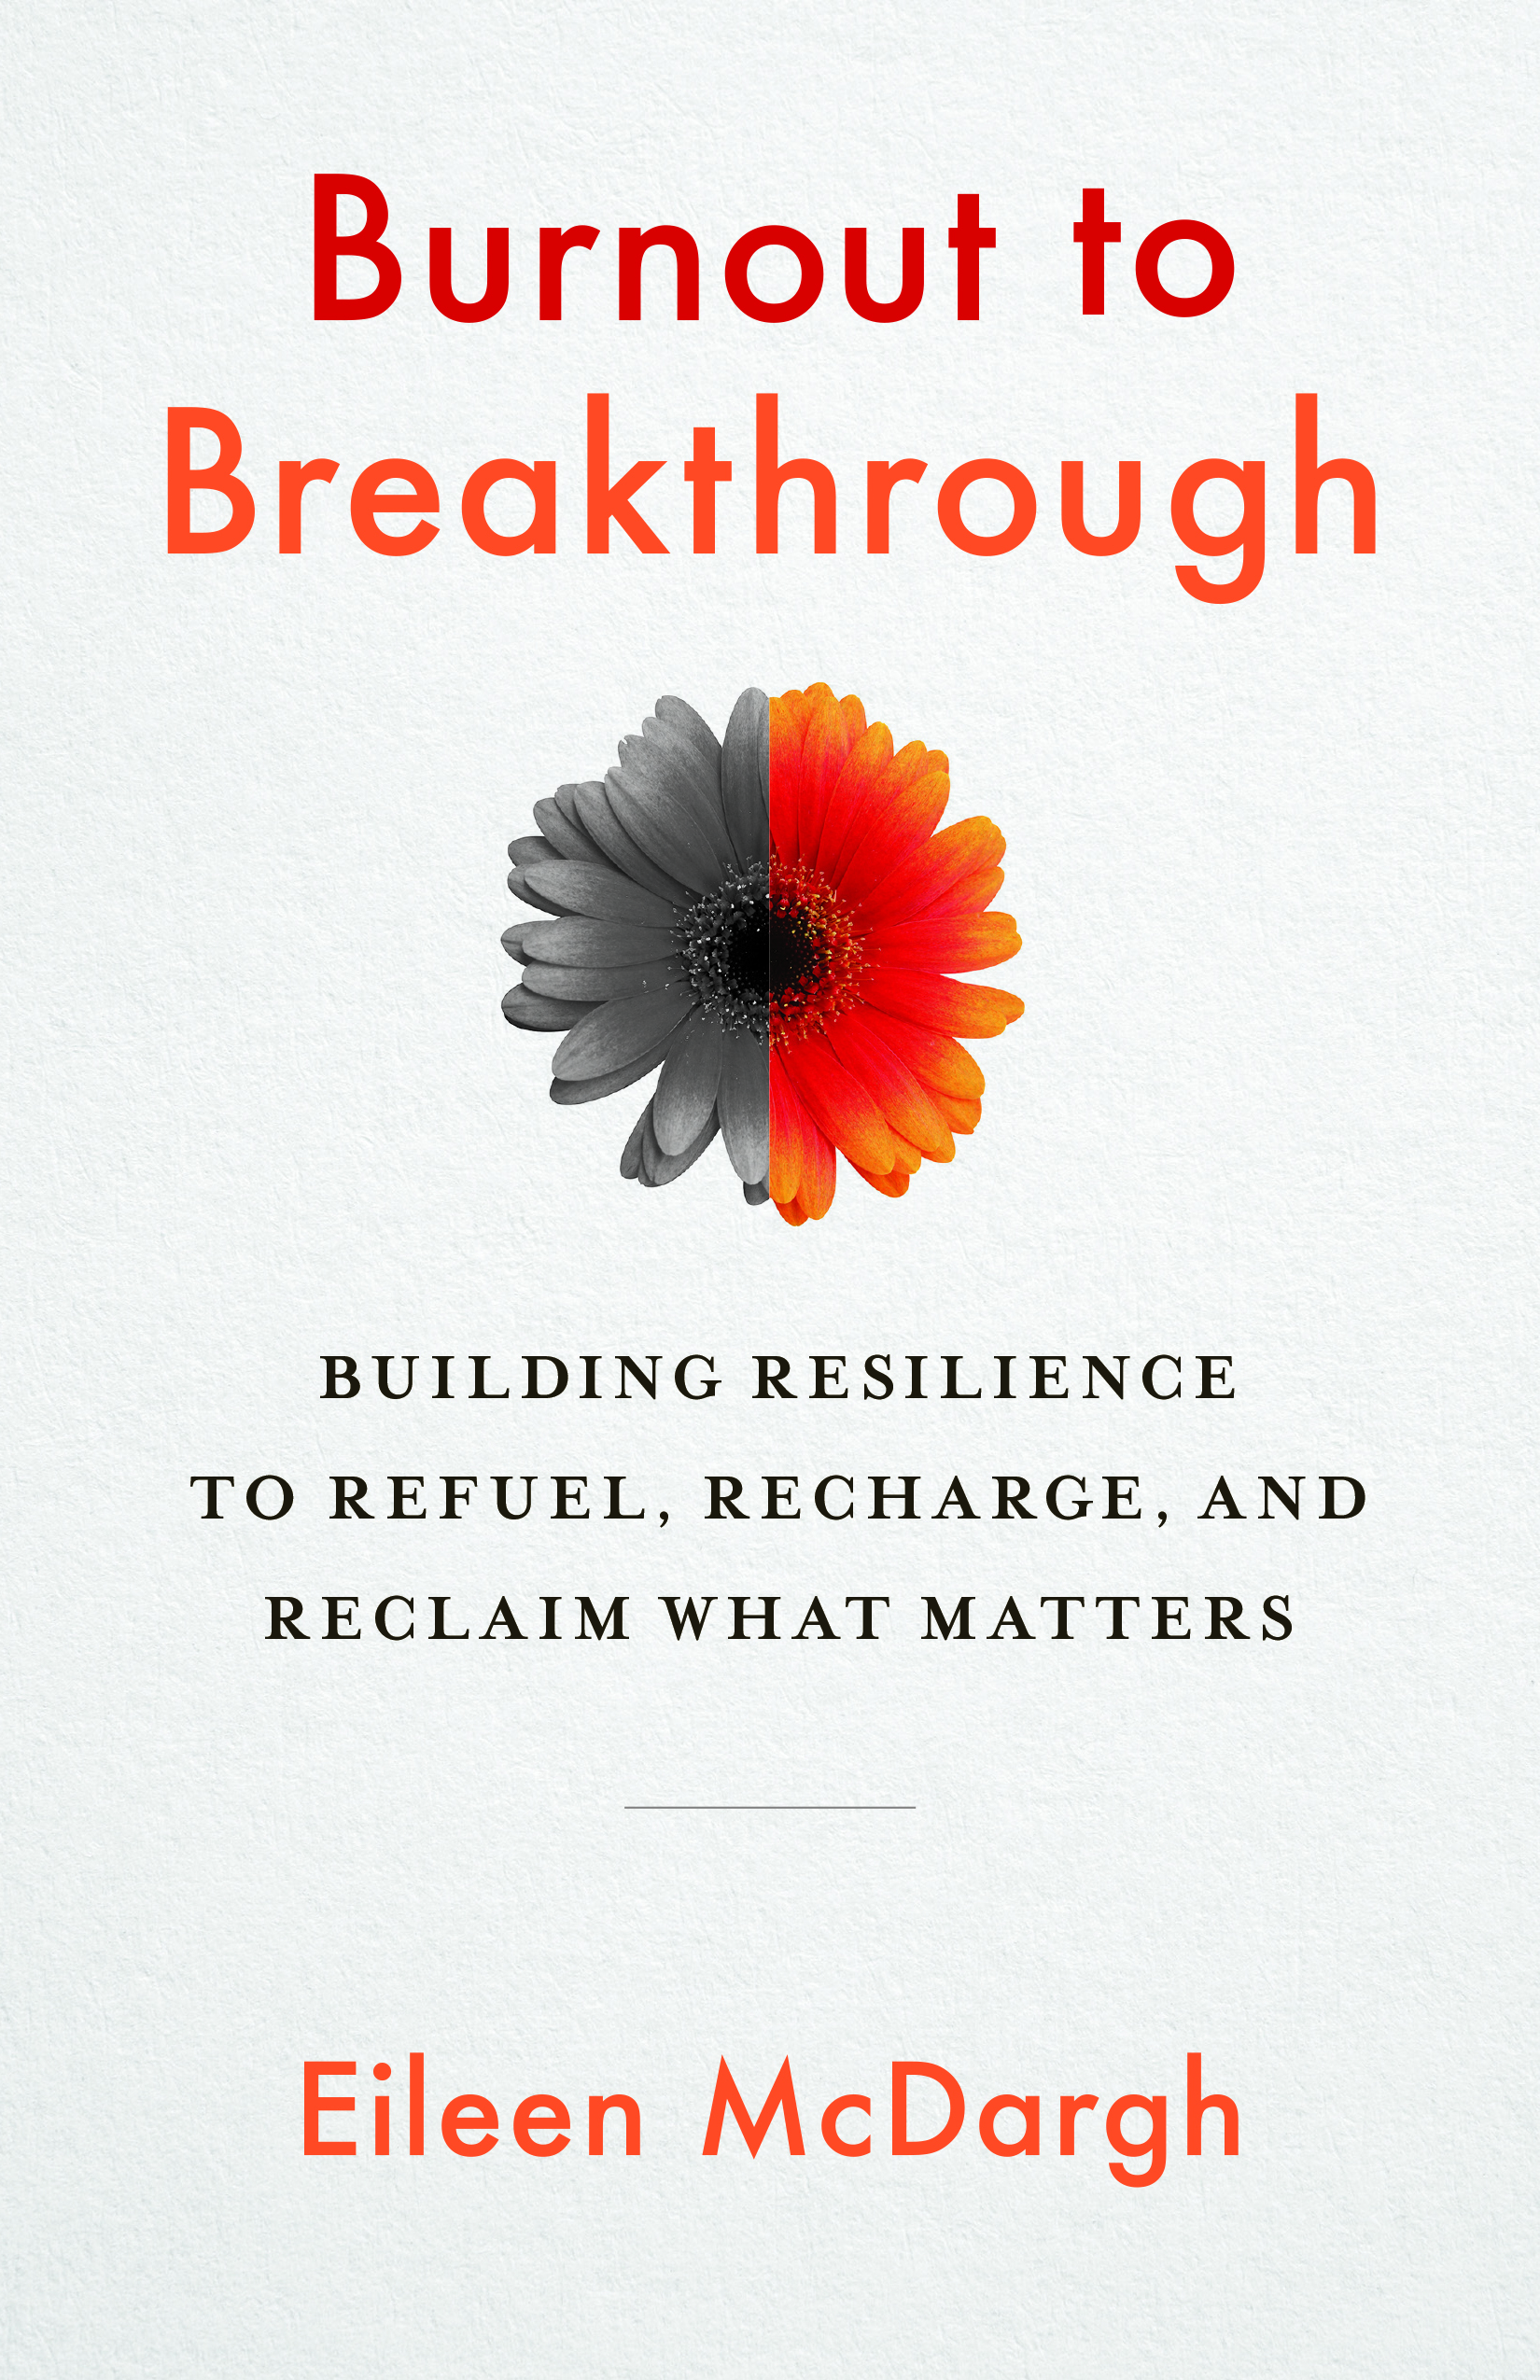 [PDF] [EPUB] Burnout to Breakthrough: Building Resilience to Refuel, Recharge, and Reclaim What Matters Download by Eileen McDargh